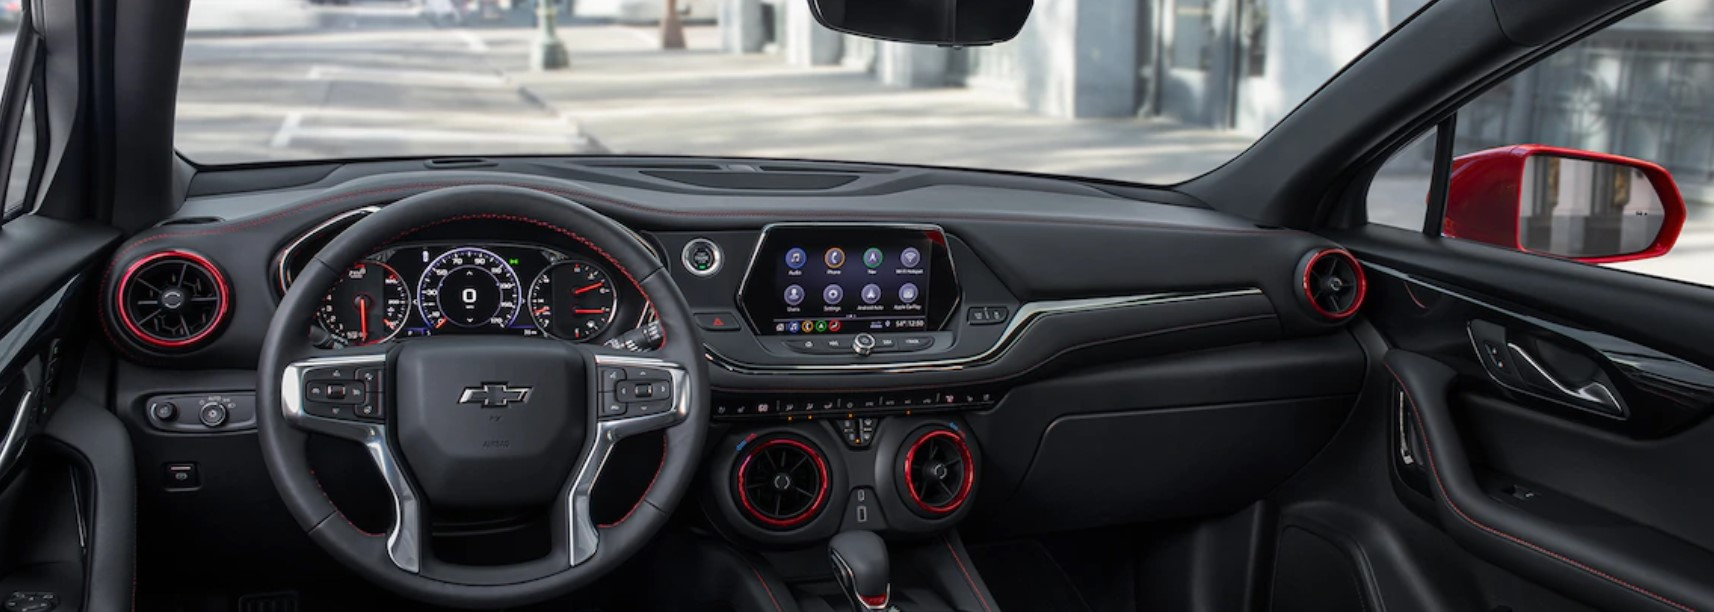 2019 Chevrolet Blazer Black Interior